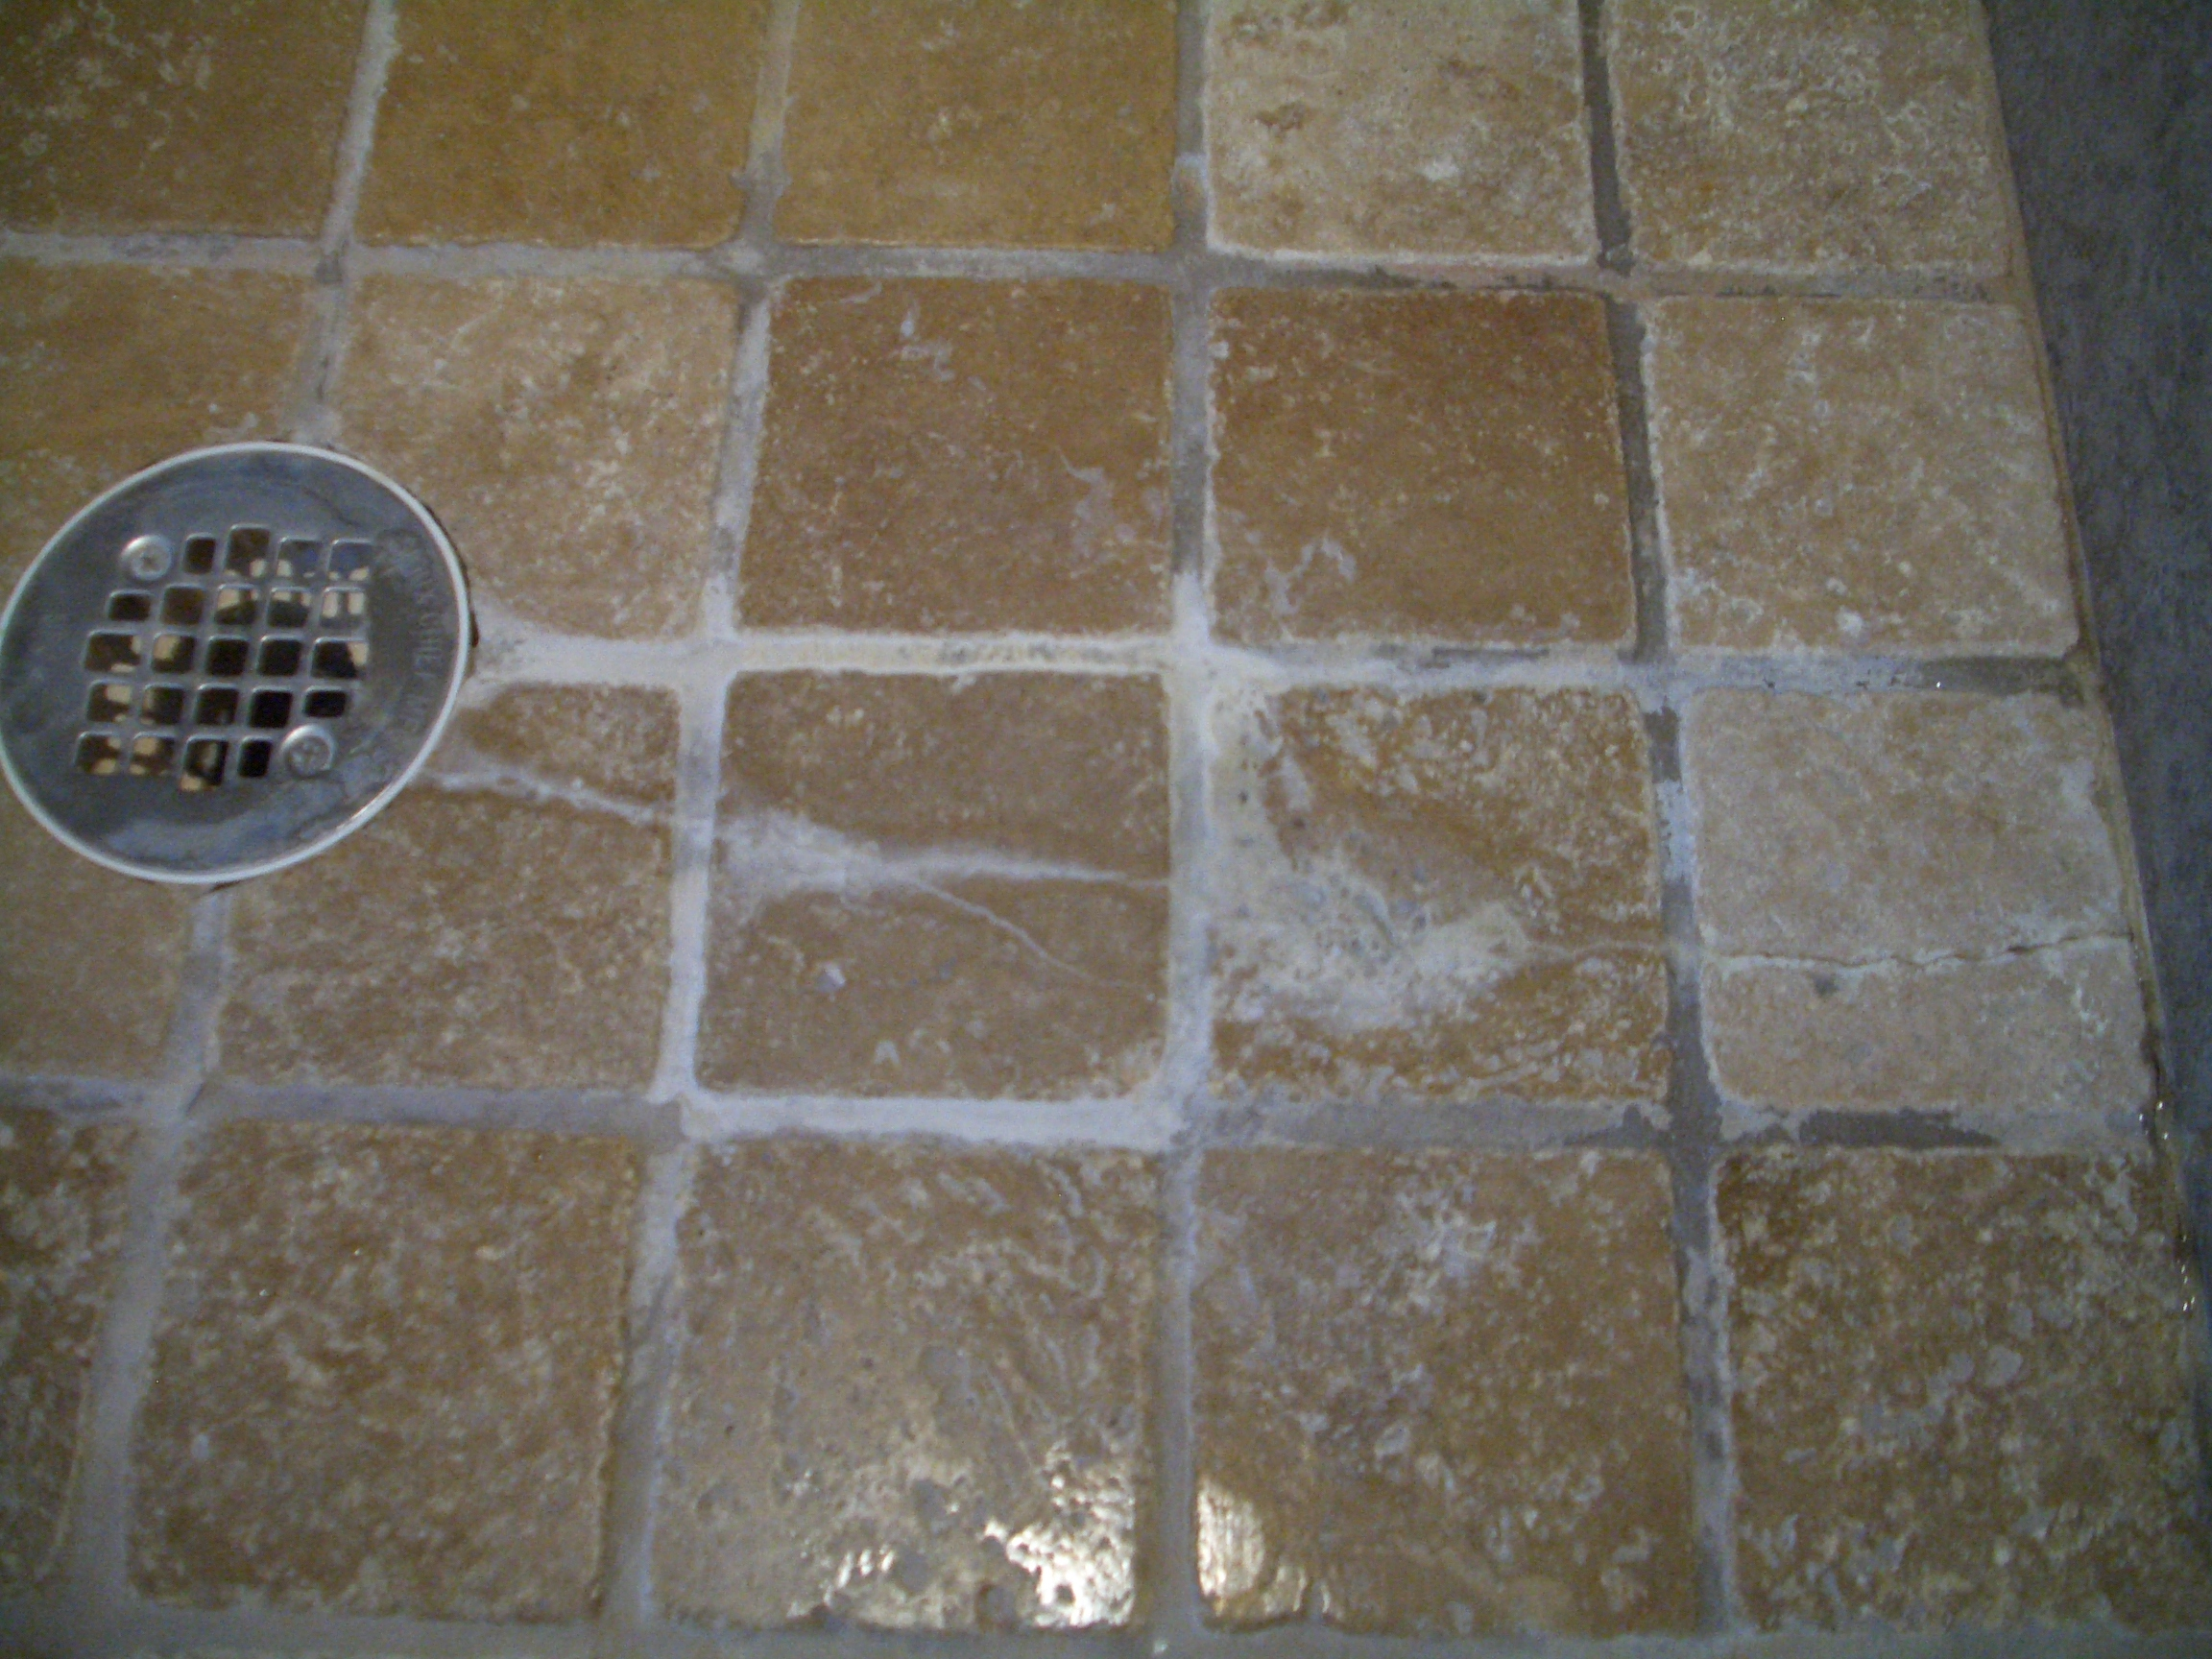 Flawed tile work yup just substandard tile no reason to see whats under it dailygadgetfo Choice Image